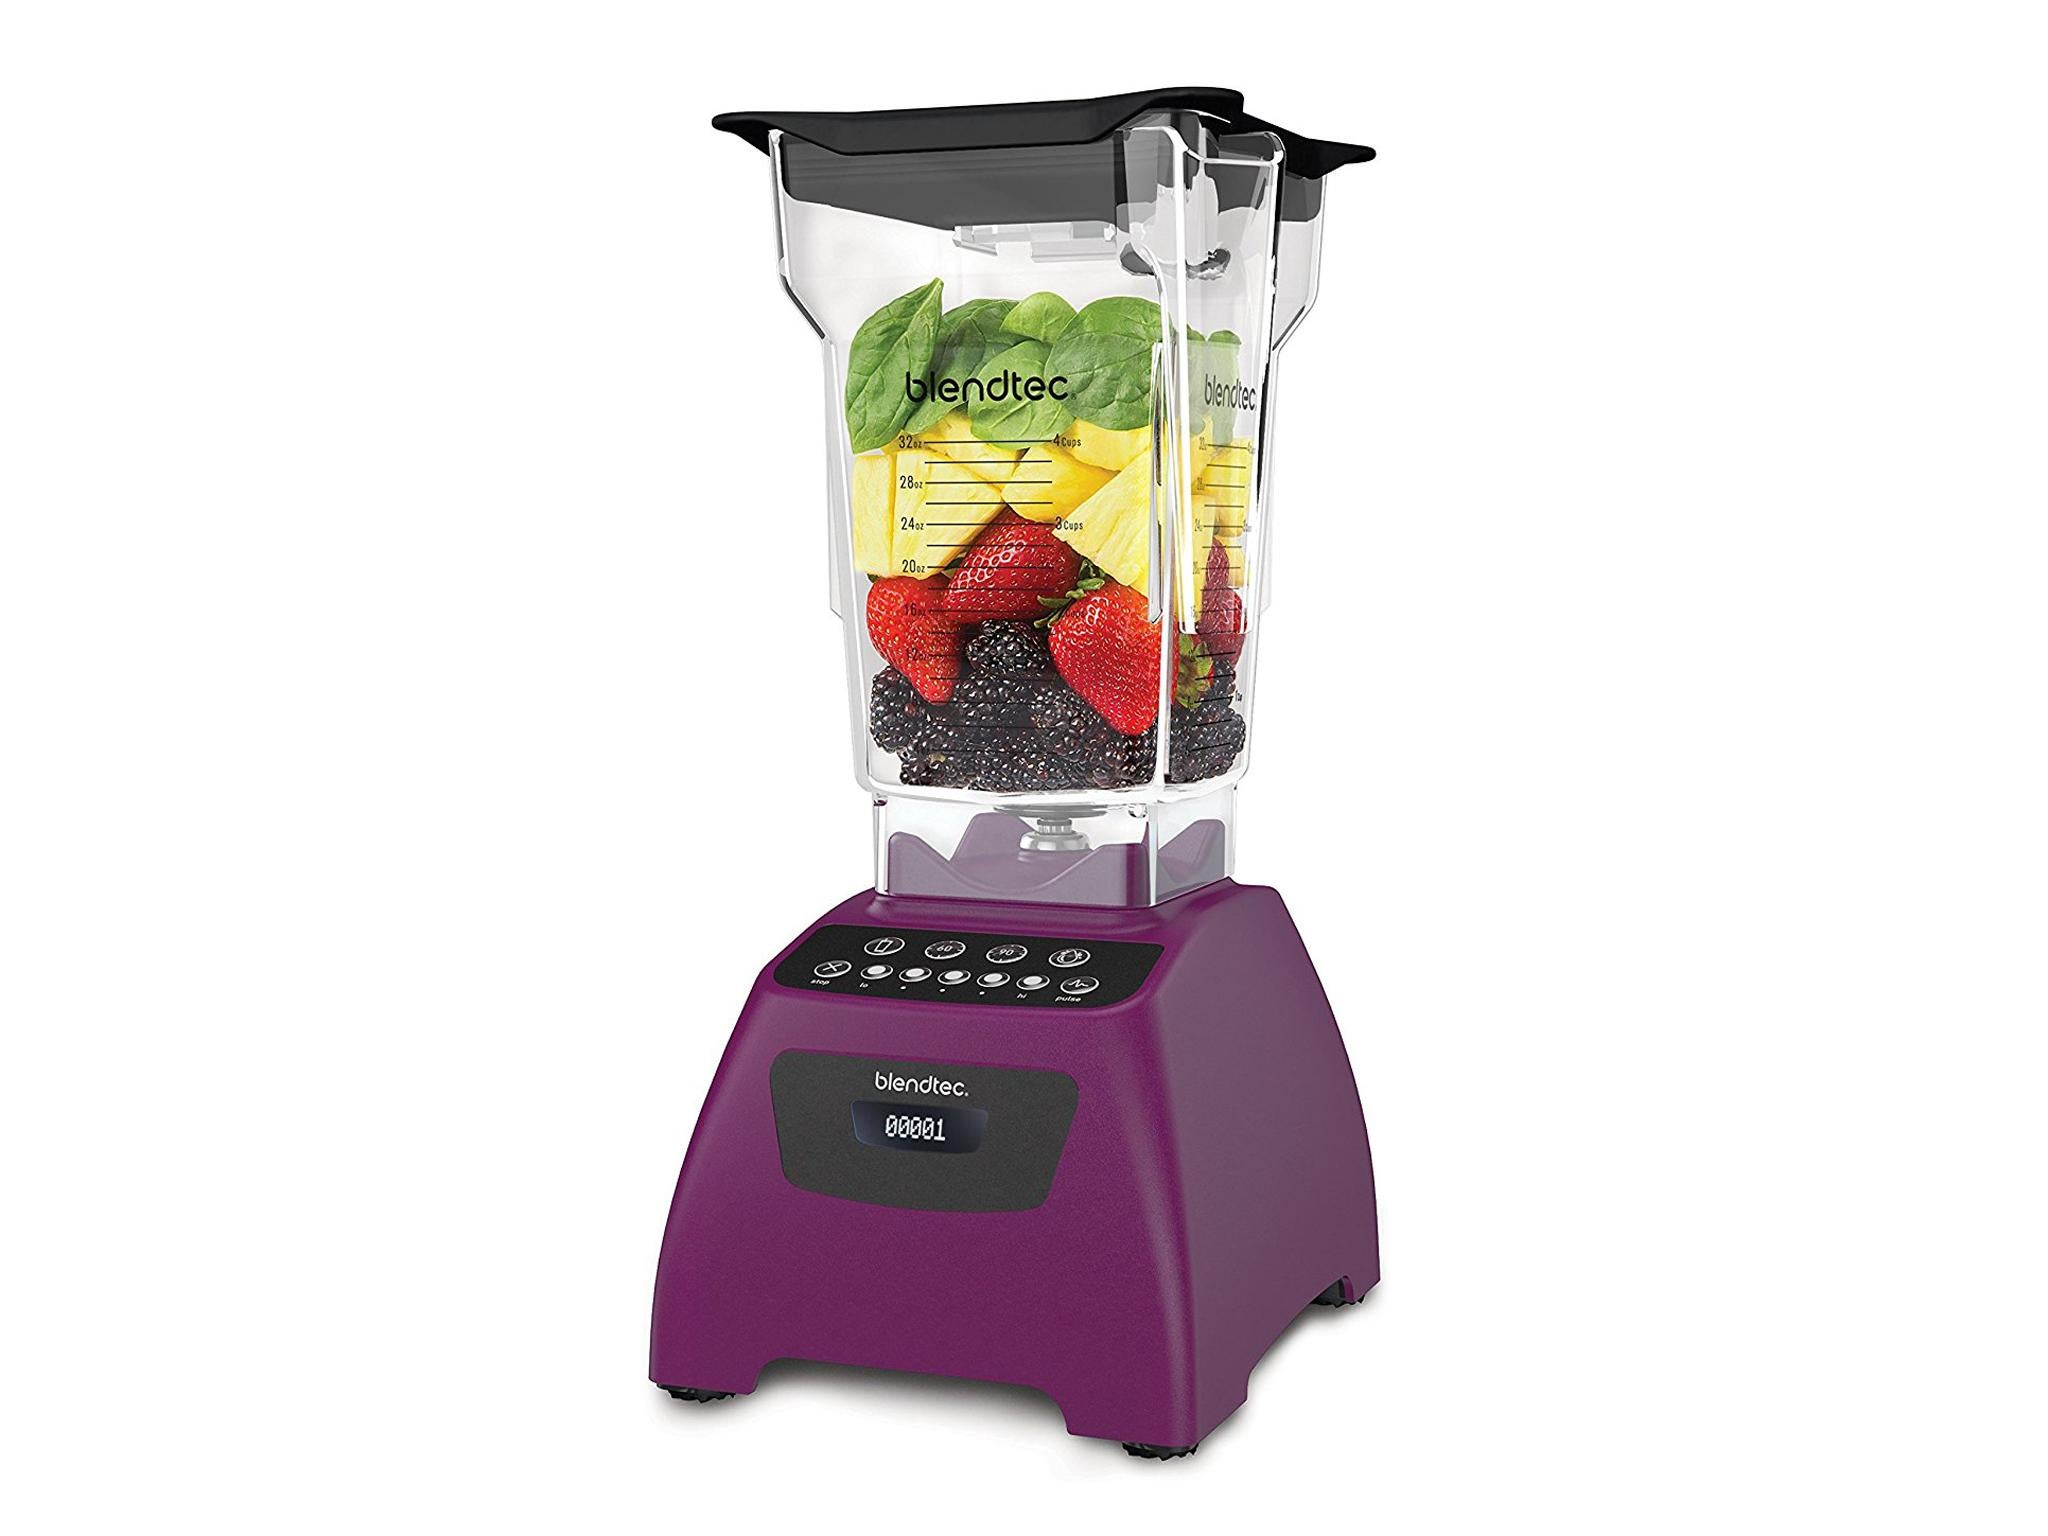 Its pricey, but Blendtecs 1560W powerhouse of a blender is an investment you can feel confident in. A favourite in professional kitchens, ...